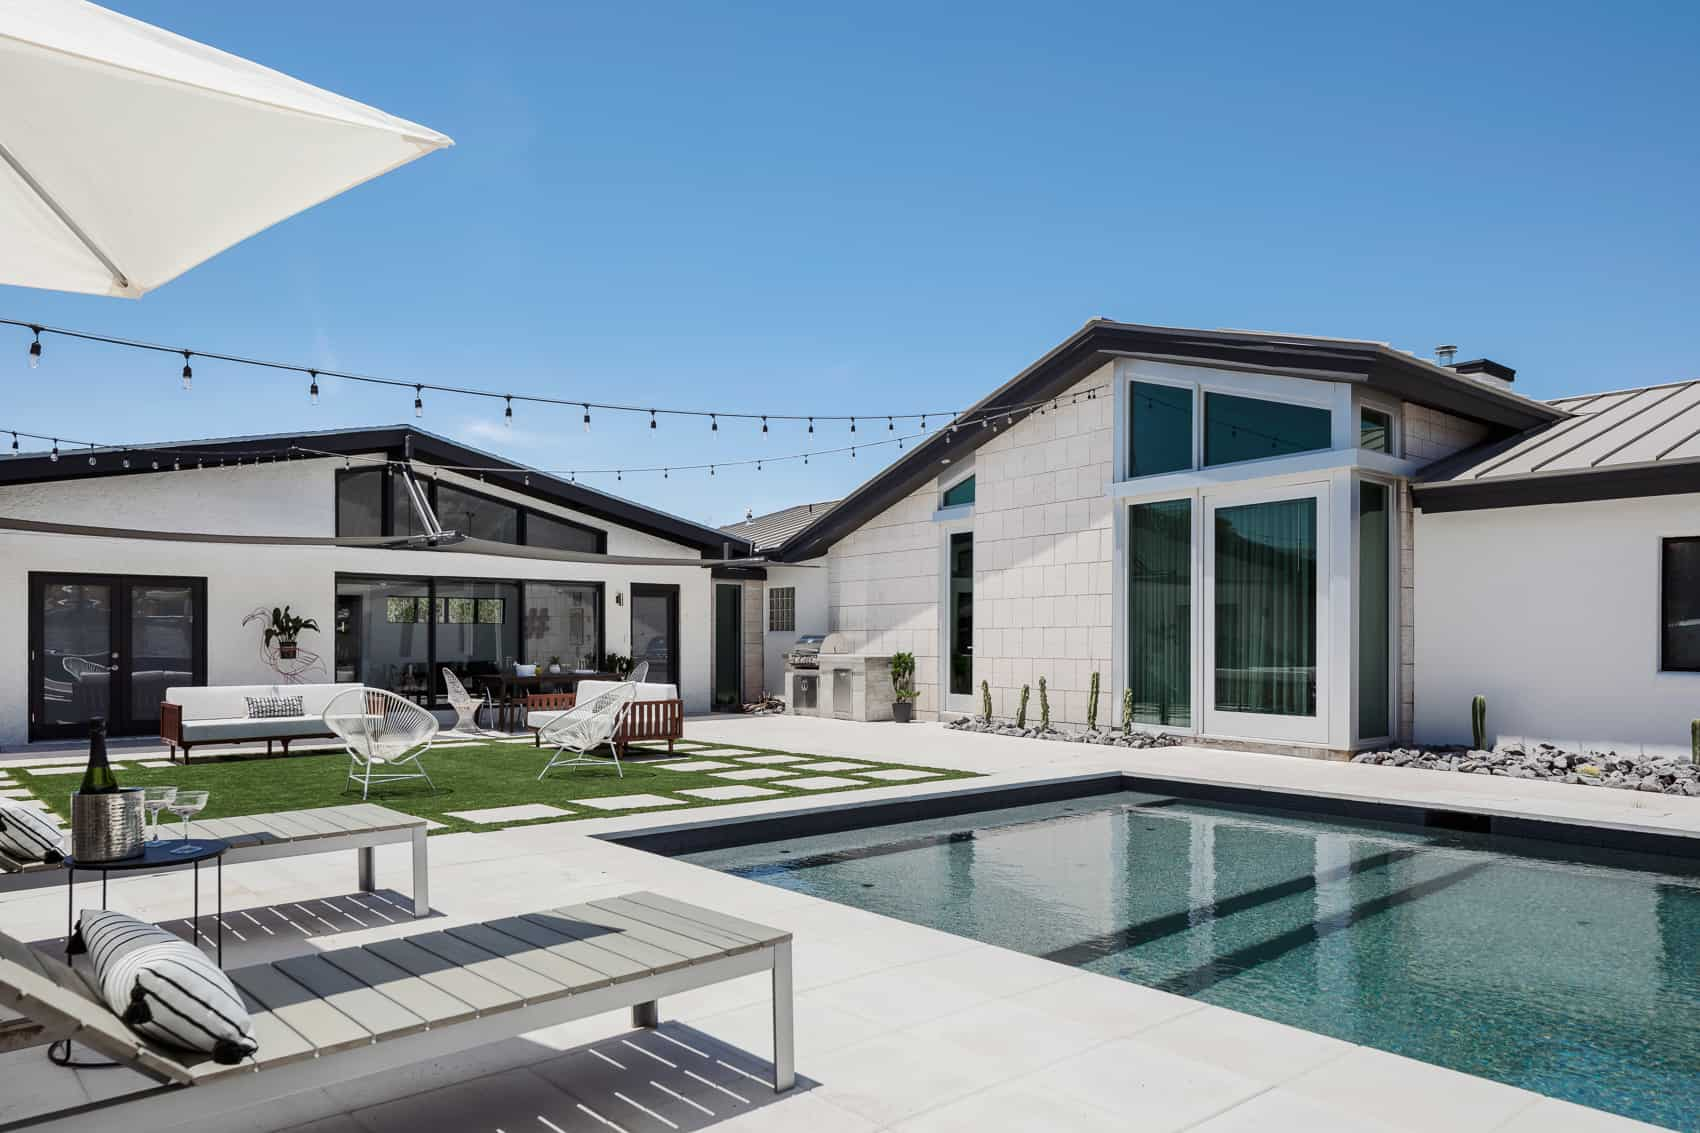 Home of the Month: Stunning Desert Home of Aquahaus Blog